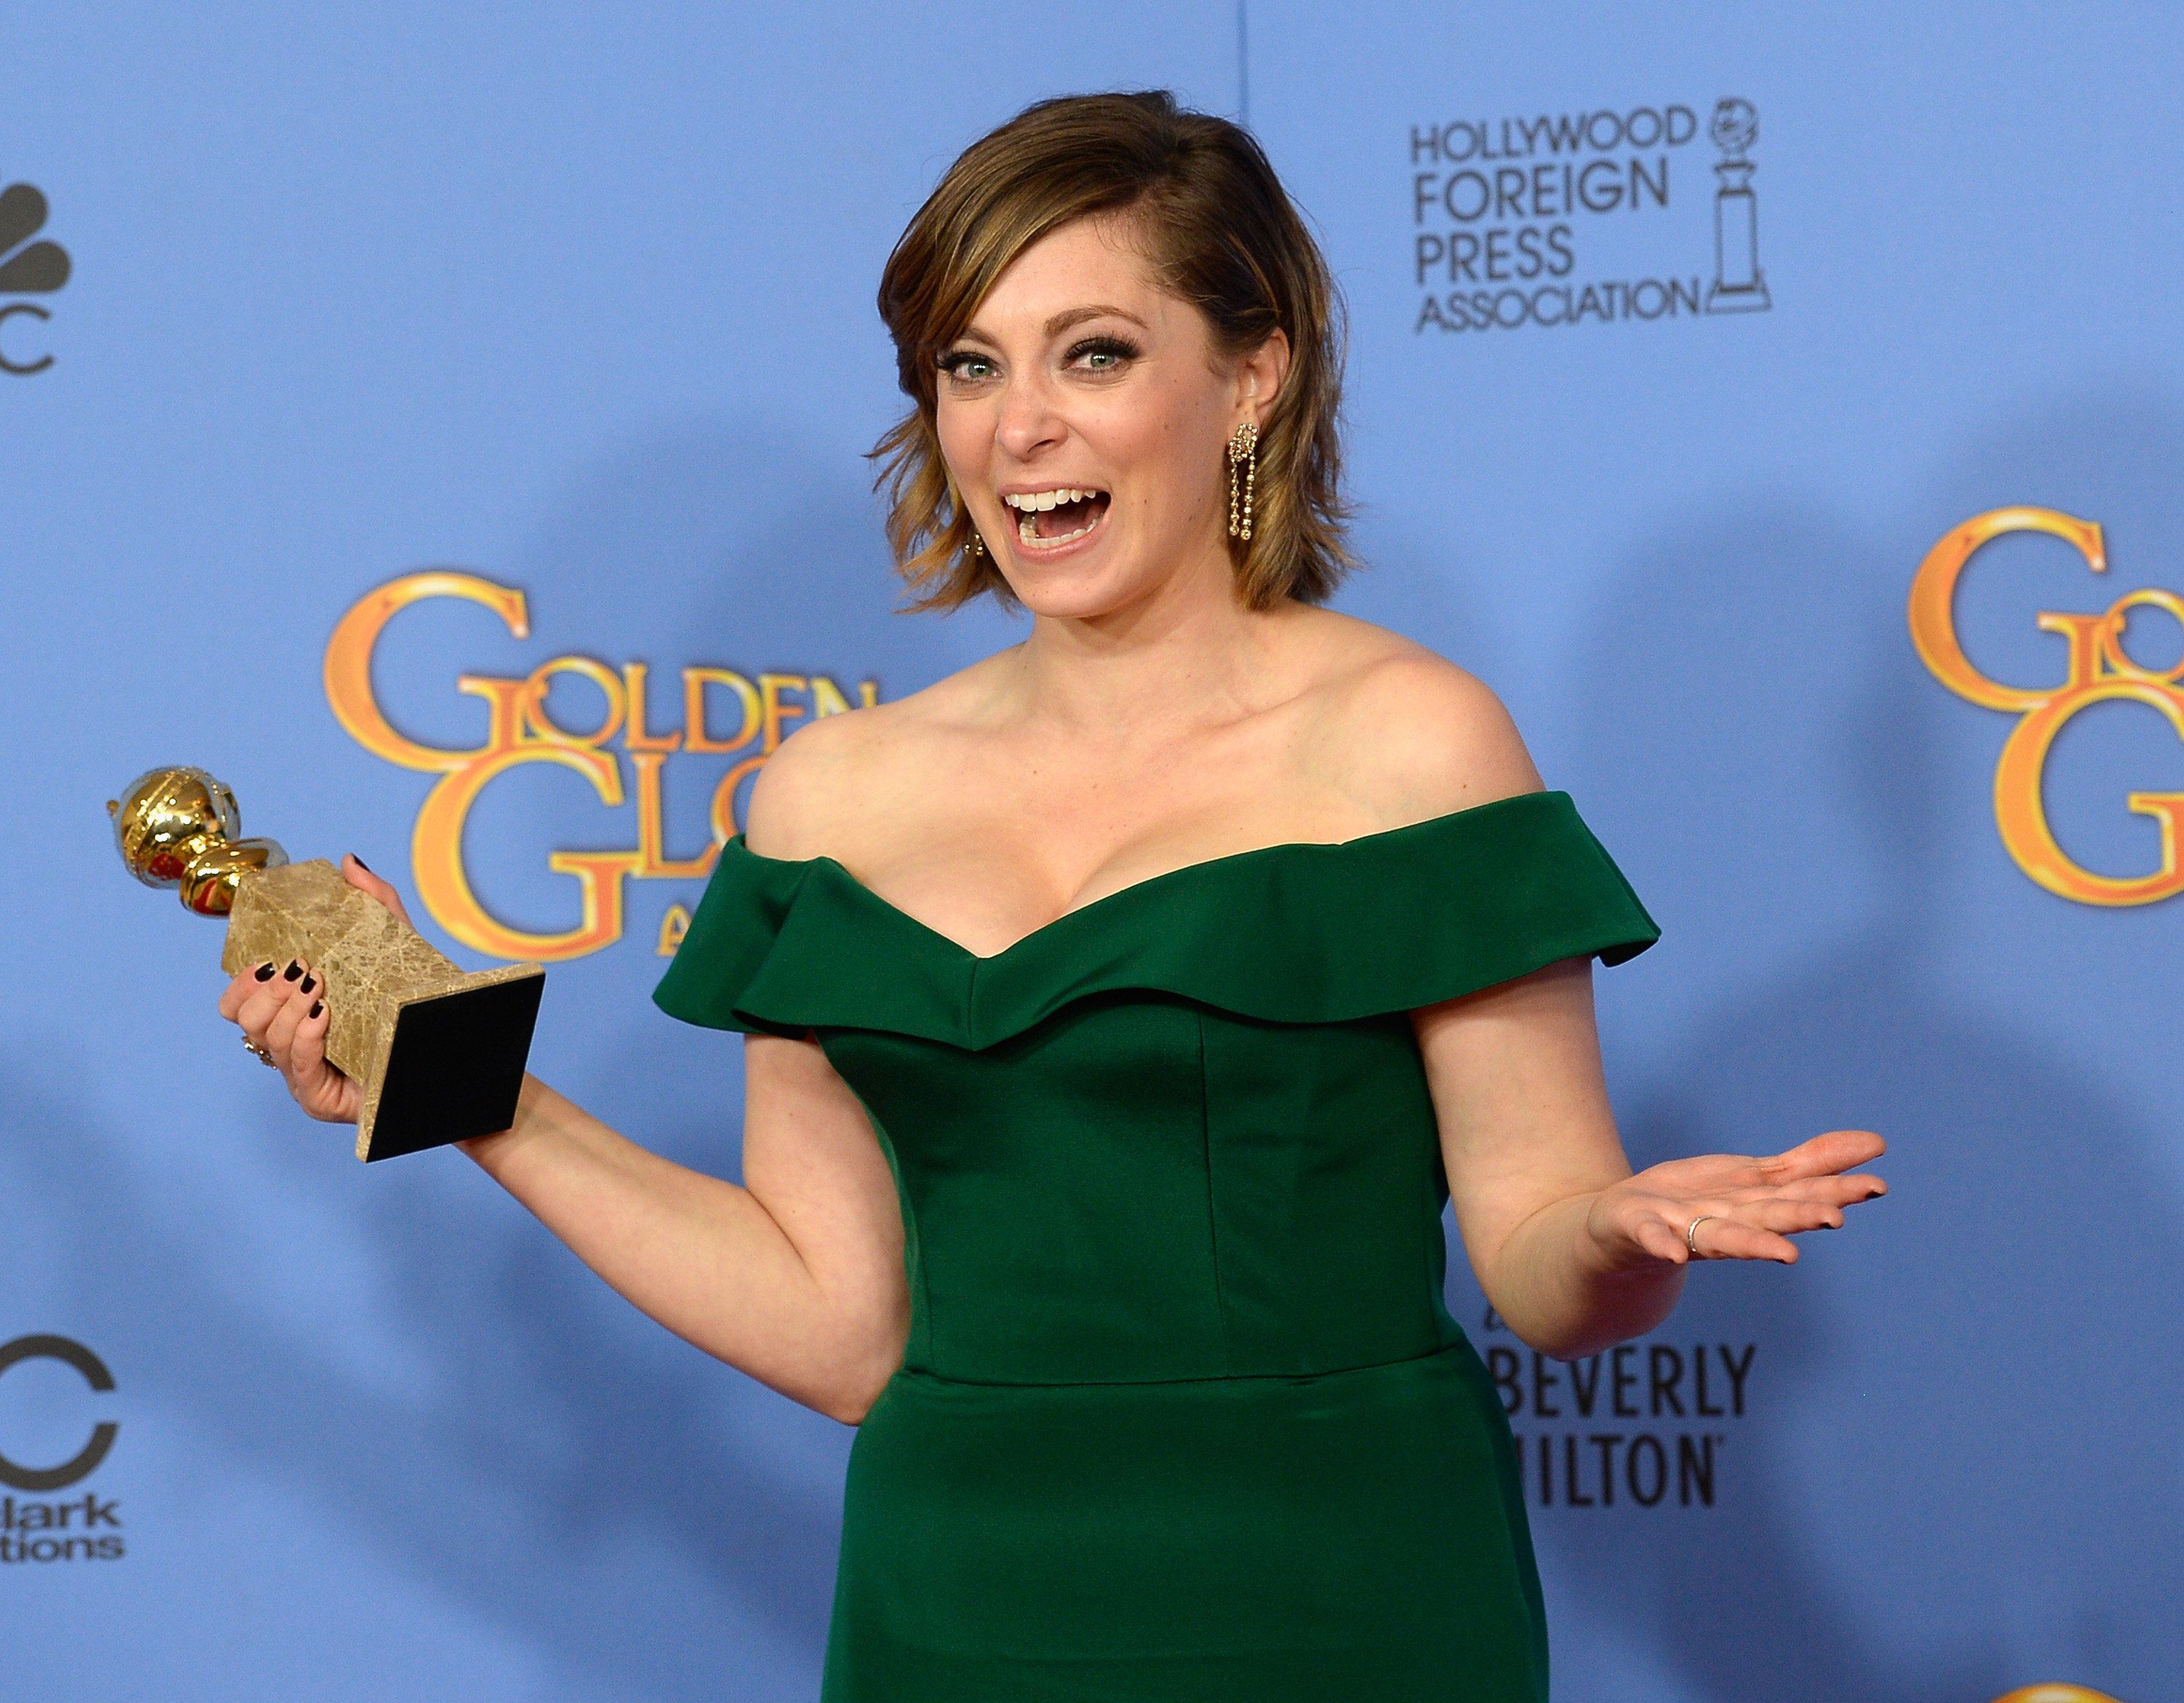 BEVERLY HILLS, CA - JANUARY 10:  73rd ANNUAL GOLDEN GLOBE AWARDS -- Pictured: Actress Rachel Bloom, winner of the award for Best Performance by an Actress in a Television Series - Musical or Comedy for 'Crazy Ex-Girlfriend', poses in the press room at the 73rd Annual Golden Globe Awards held at the Beverly Hilton Hotel on January 10, 2016.  (Photo by Kevork Djansezian/NBC/NBCU Photo Bank via Getty Images)